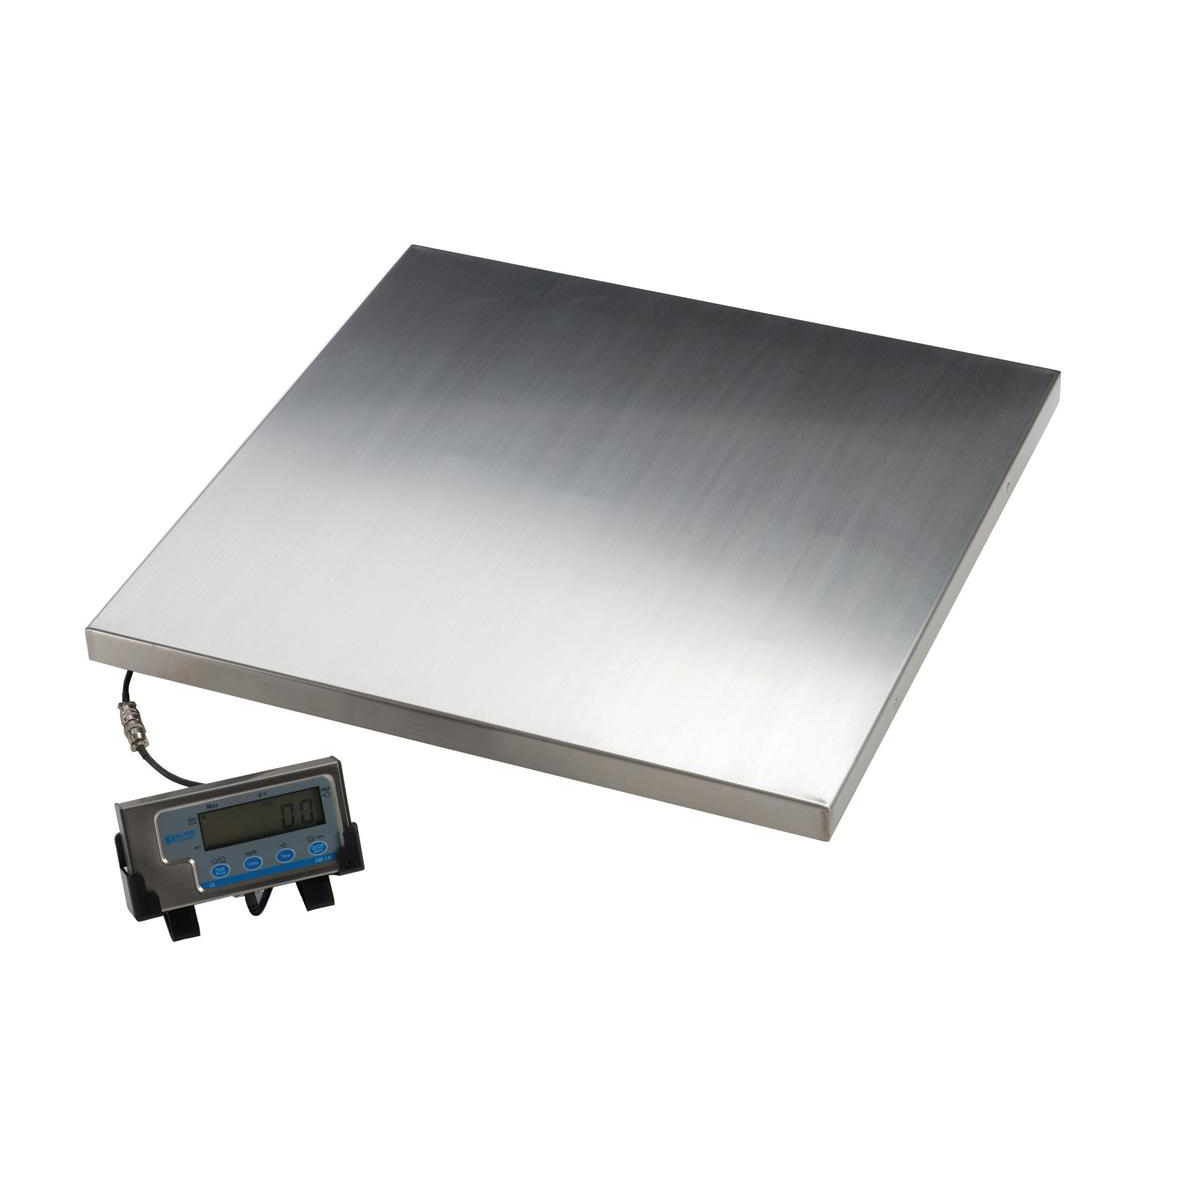 Scales Salter Platform Scales Tare Imperial and Metric Capacity 300kg 50g Increments Silver Ref WS300-50